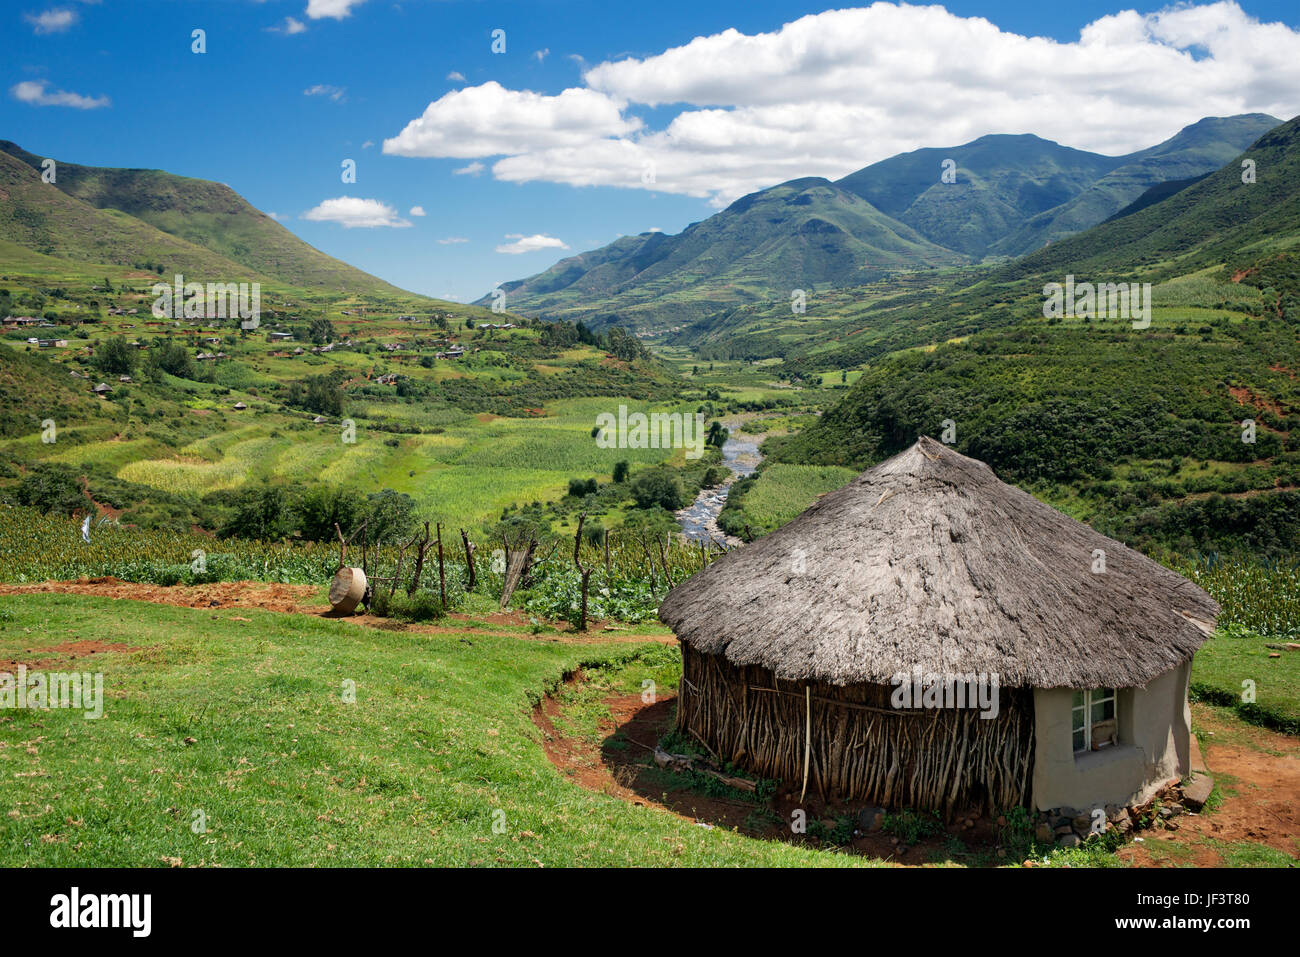 Landscape hlotse river valley with thatched rondavel house leribe district lesotho southern africa stock image